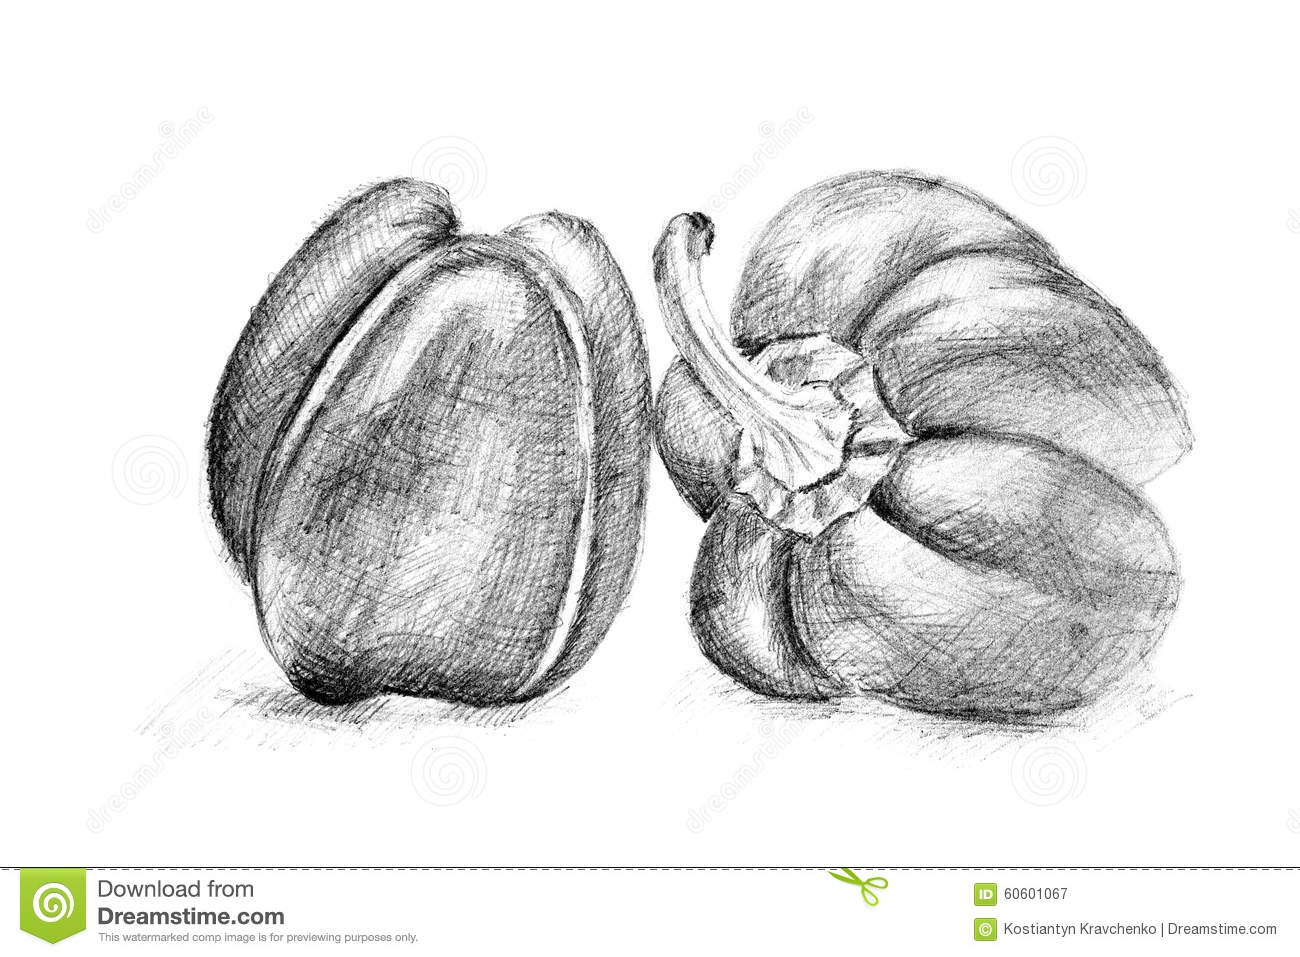 How to Draw an Eggplant forecasting